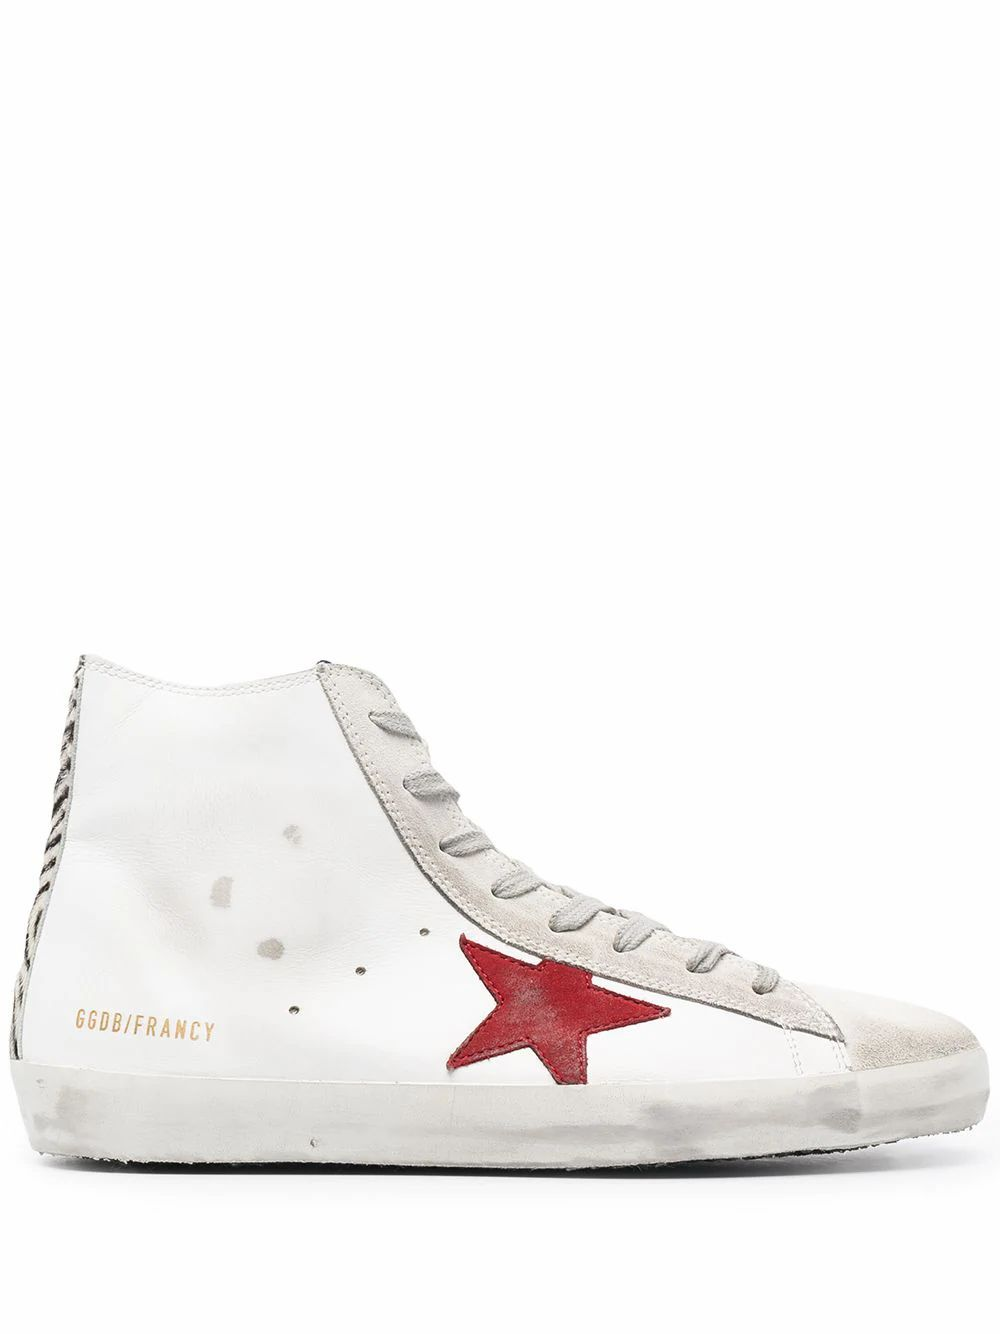 Golden Goose Leathers GOLDEN GOOSE MEN'S GMF00113F00123180913 WHITE LEATHER HI TOP SNEAKERS